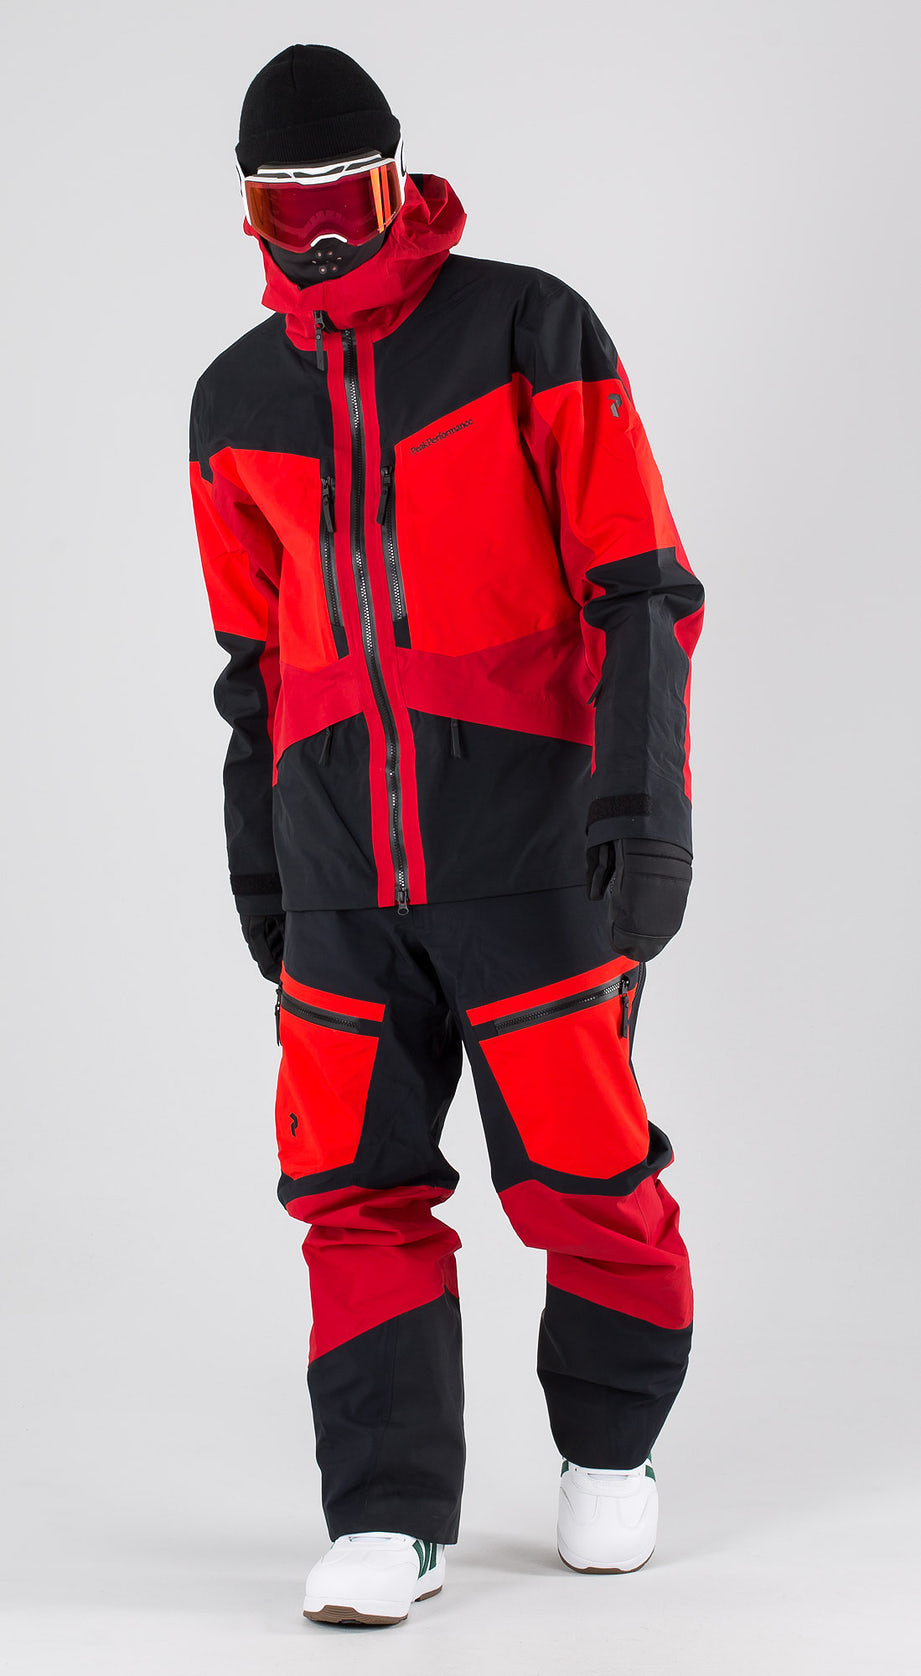 Peak Performance Gravity Dynared Snowboardkleidung Multi